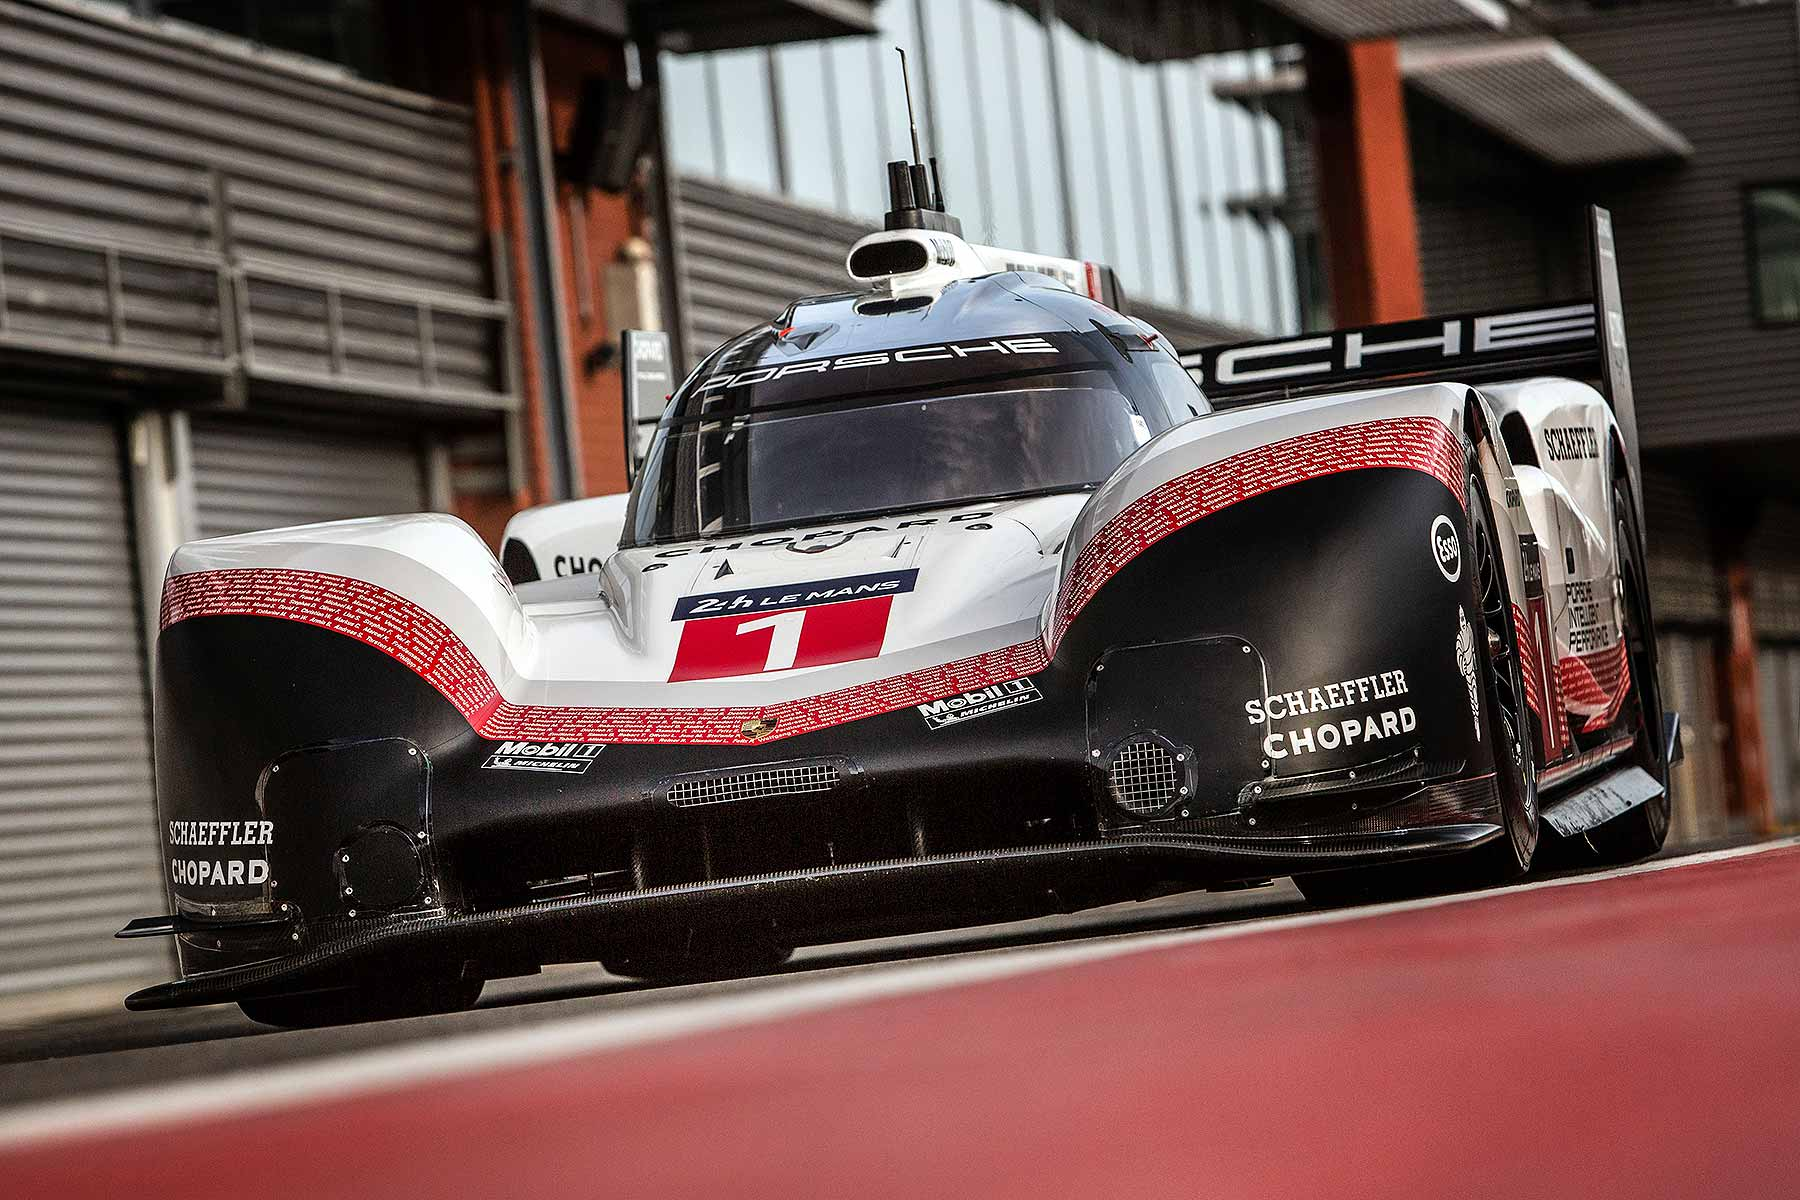 official porsche le mans racer is faster than an f1 car motoring research. Black Bedroom Furniture Sets. Home Design Ideas